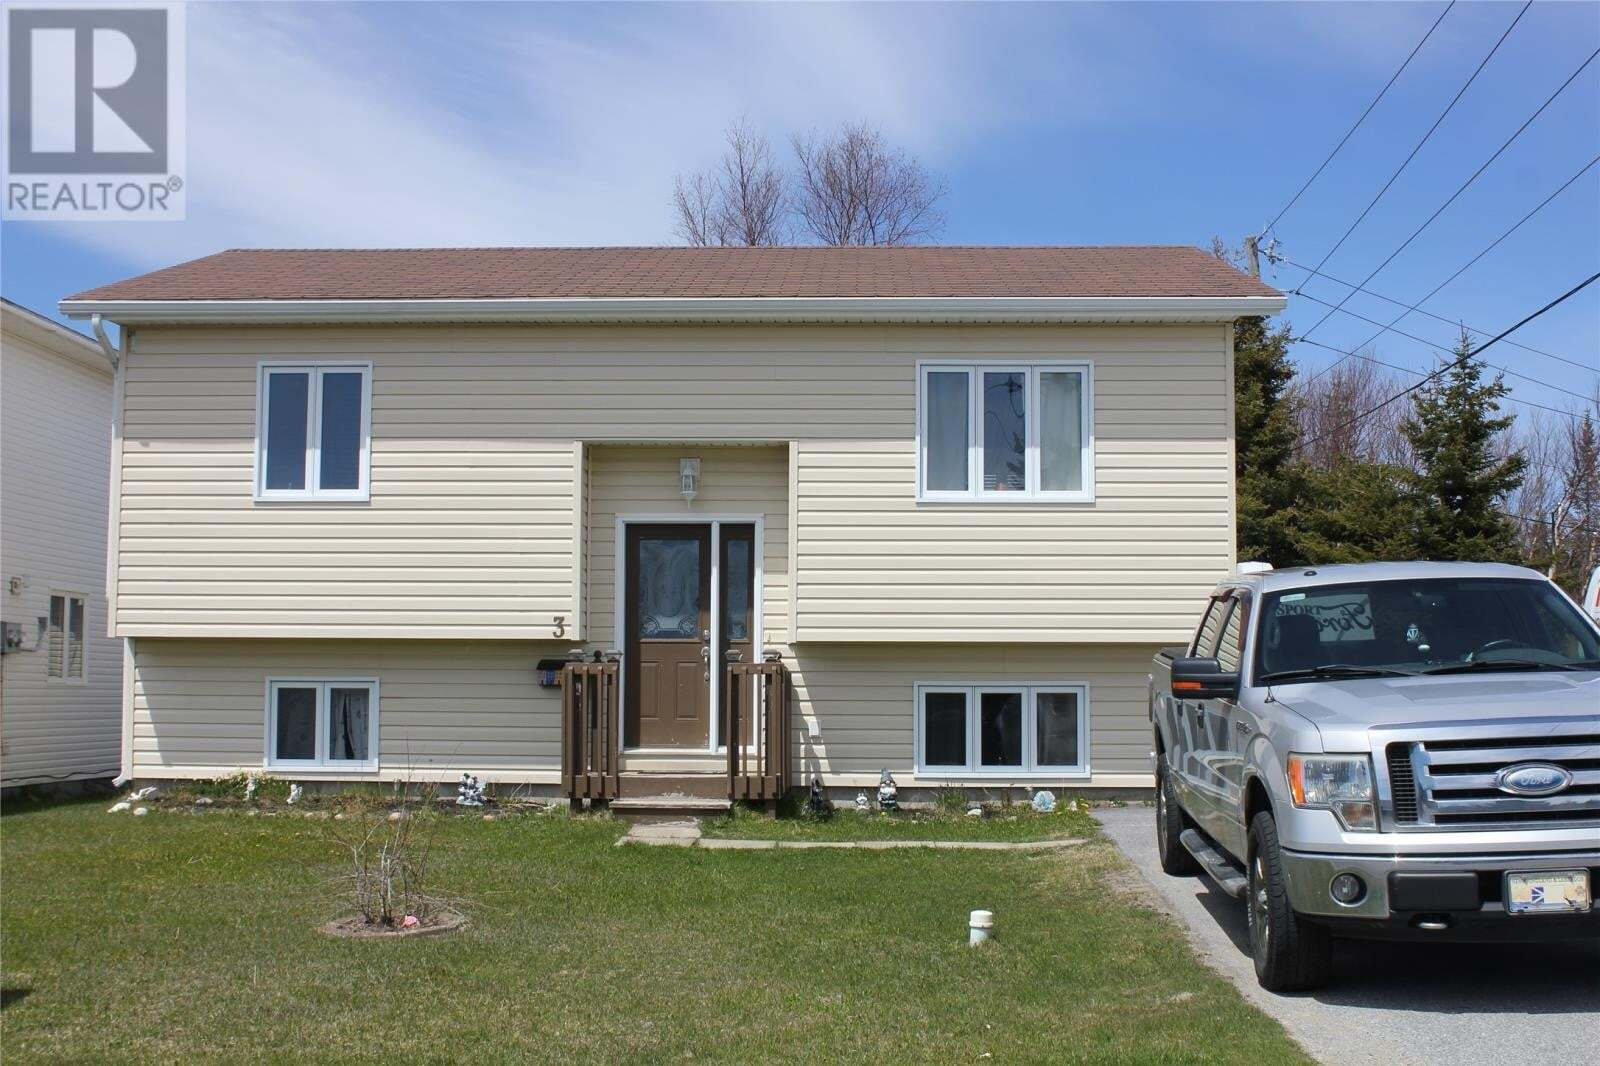 House for sale at 3 Fowlow Dr Stephenville Newfoundland - MLS: 1214045